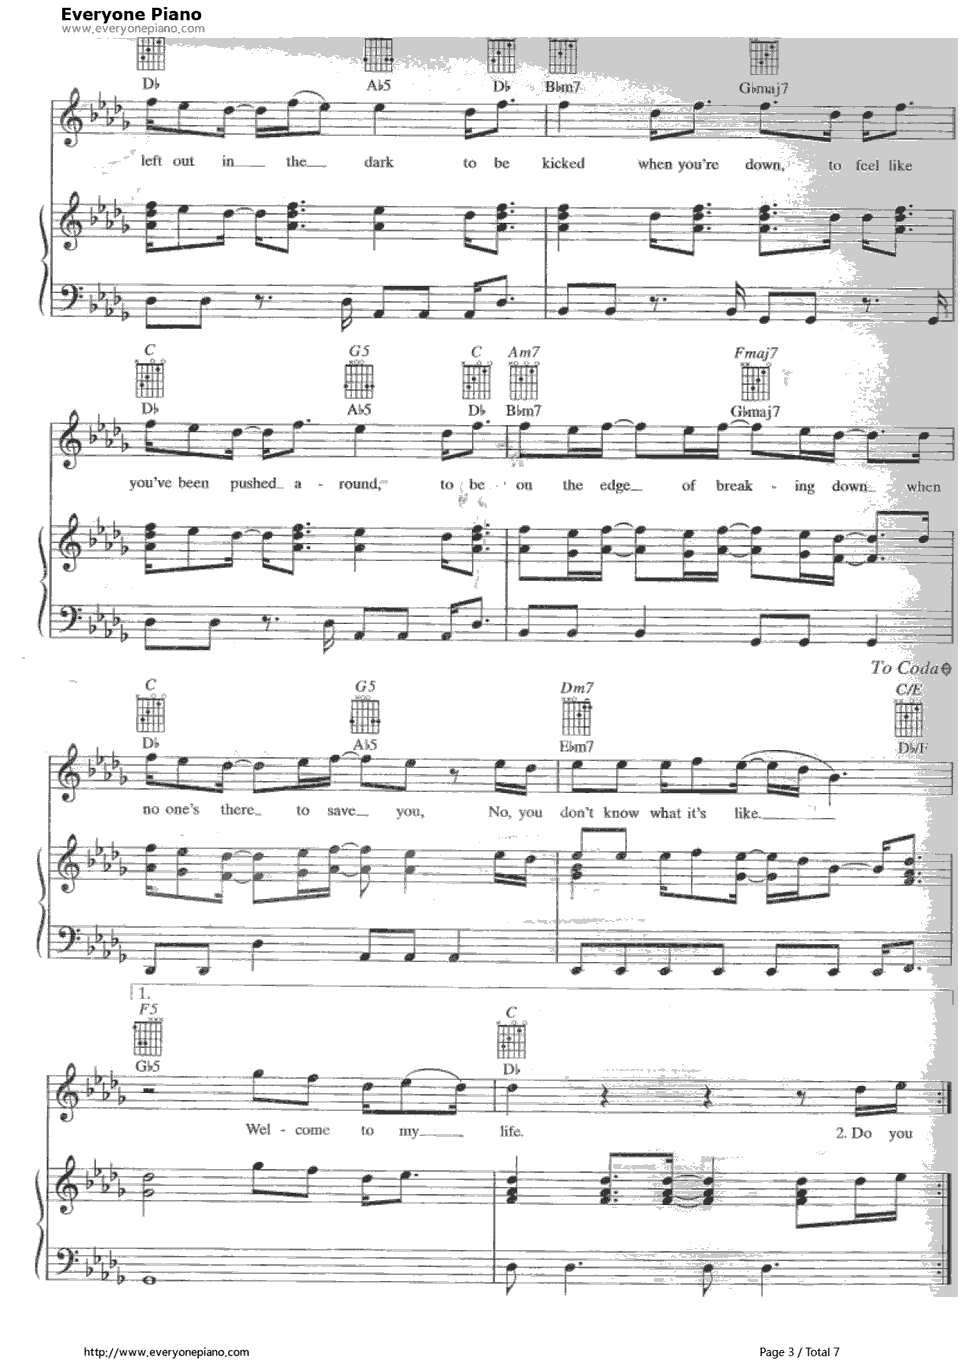 Welcome to my life simple plan stave preview 3 free piano sheet listen now print sheet welcome to my life simple plan stave preview 3 hexwebz Image collections